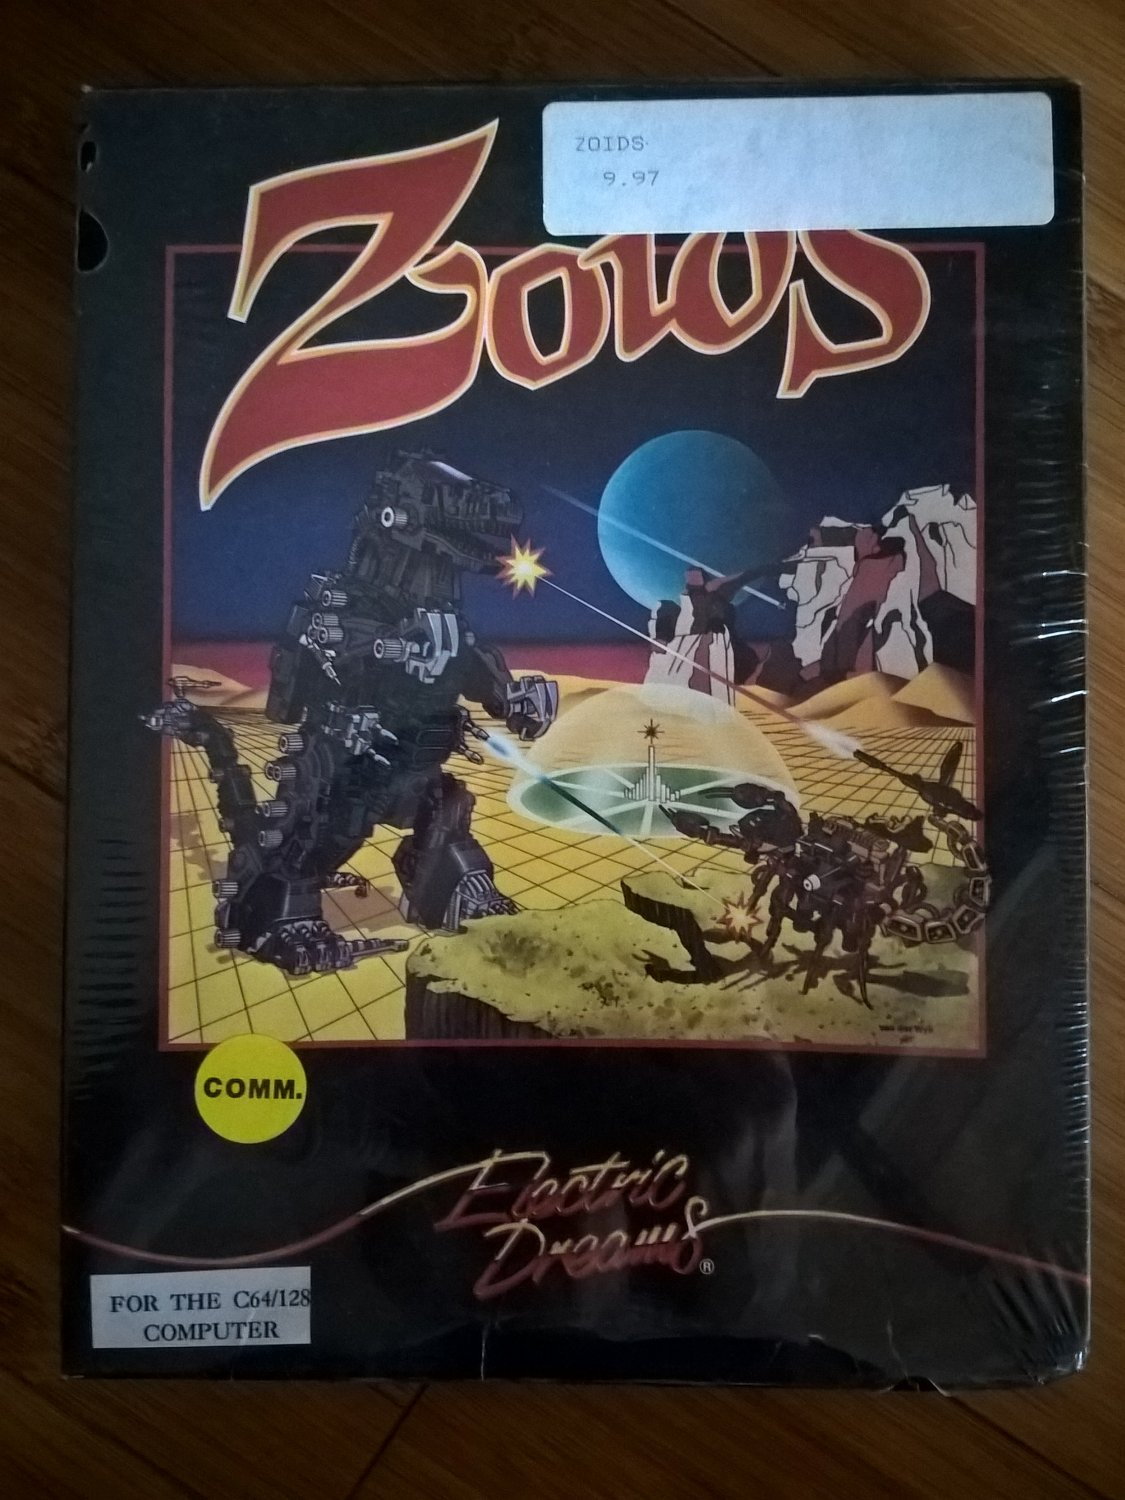 Zoids For Commodore 64/128, NEW FACTORY SEALED, Electric Dreams